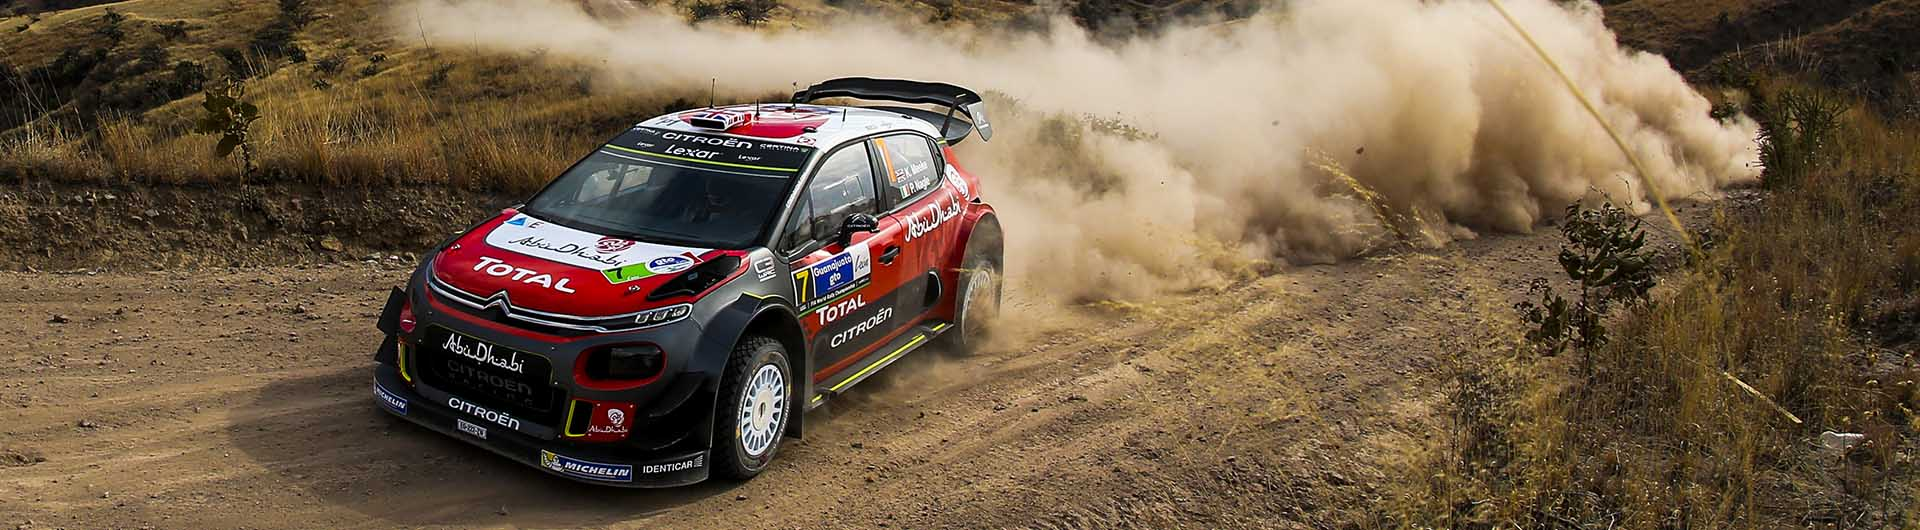 Meeke vence Rally do México